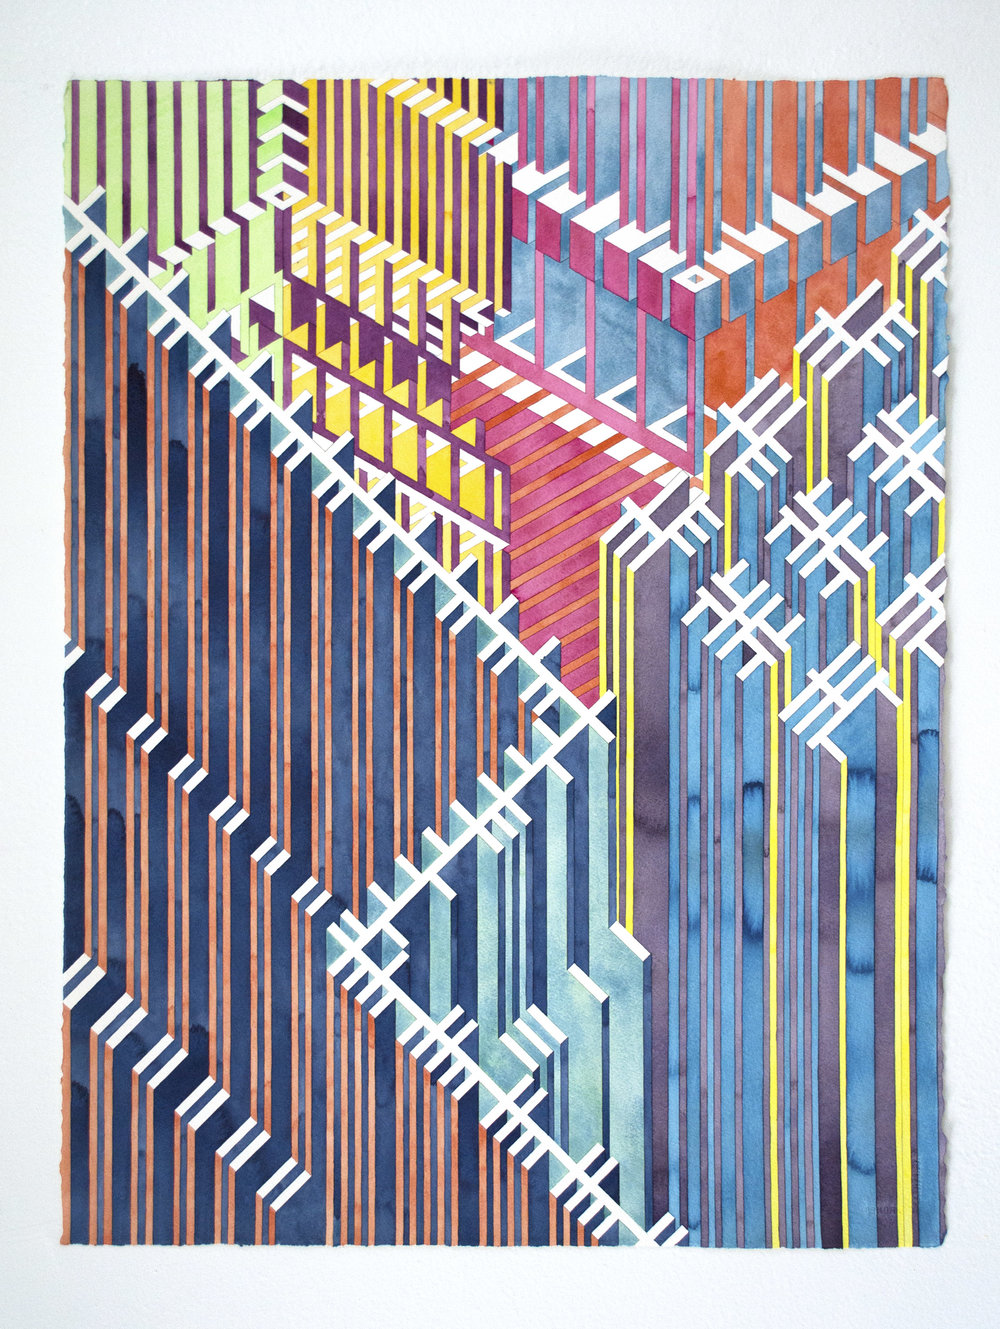 Untitled (supremacy), 2018 | watercolor graphite on watercolor paper | 30 x 22 inches